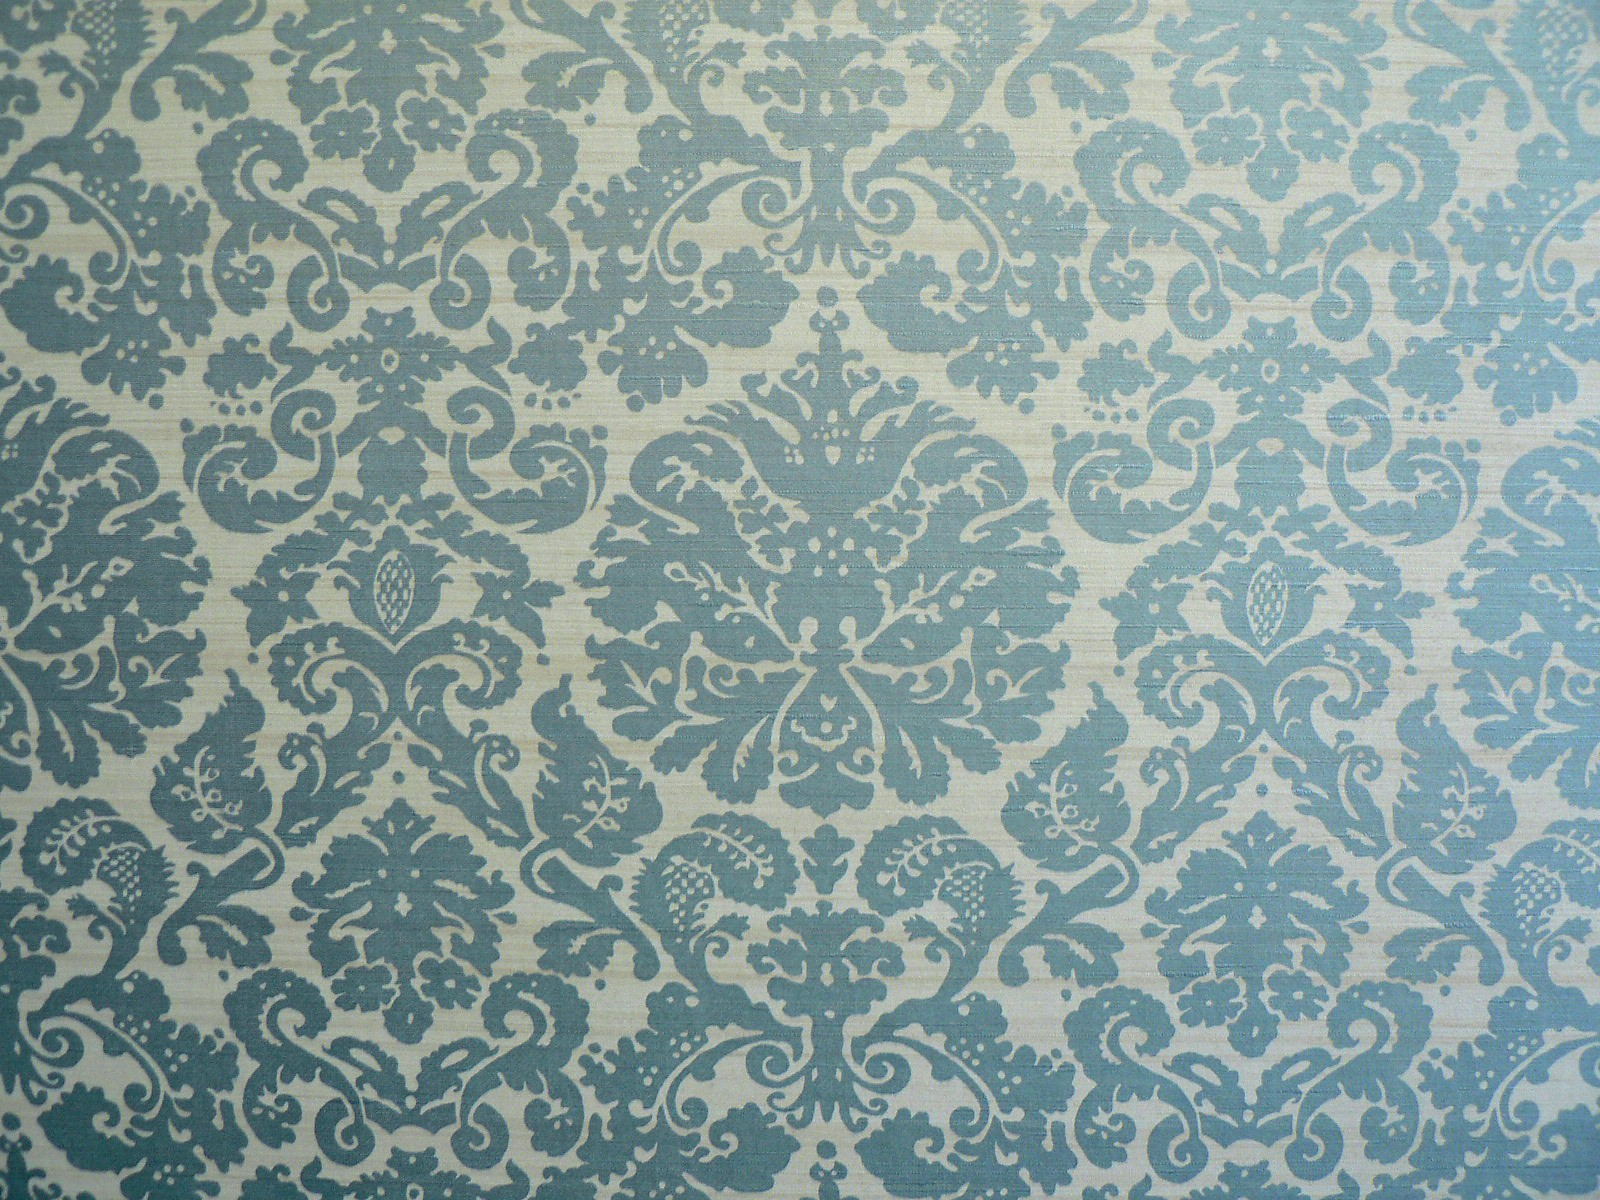 Wallpaper Patterns Vintage